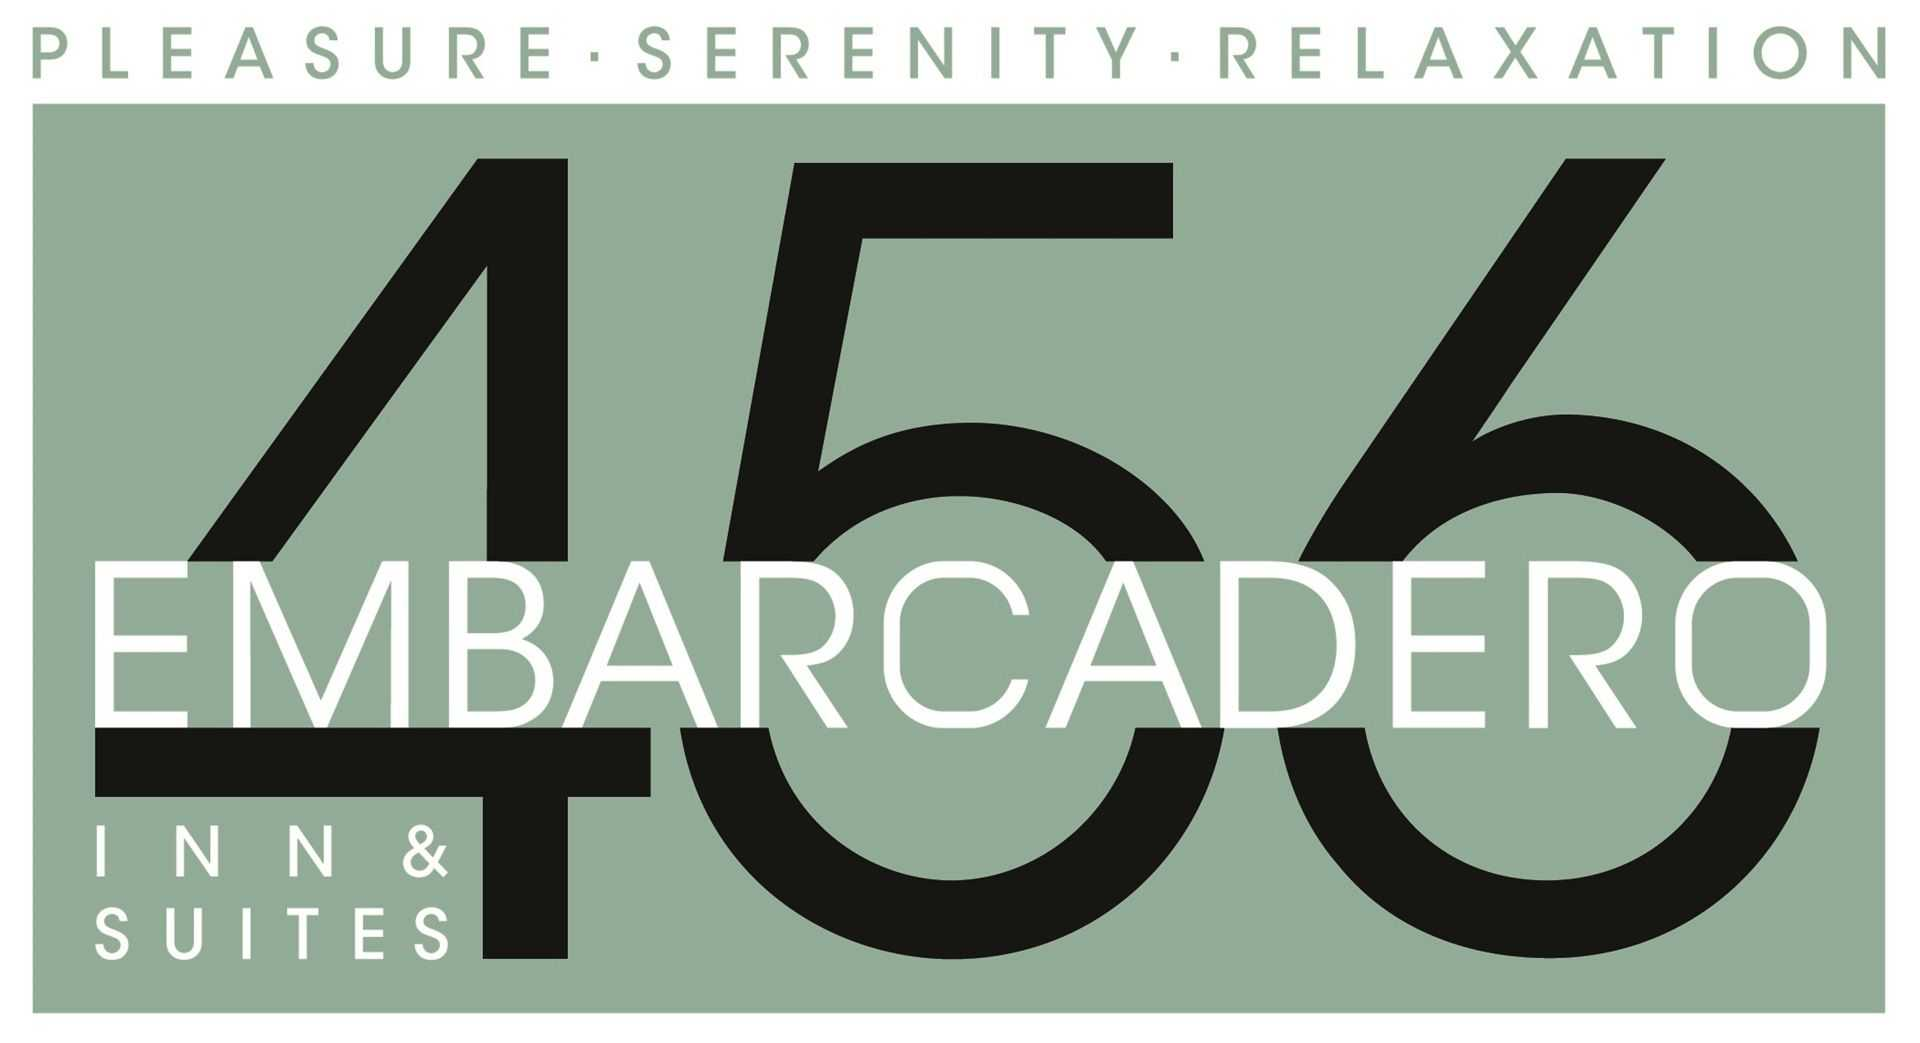 456 Embarcadero Inn & Suites